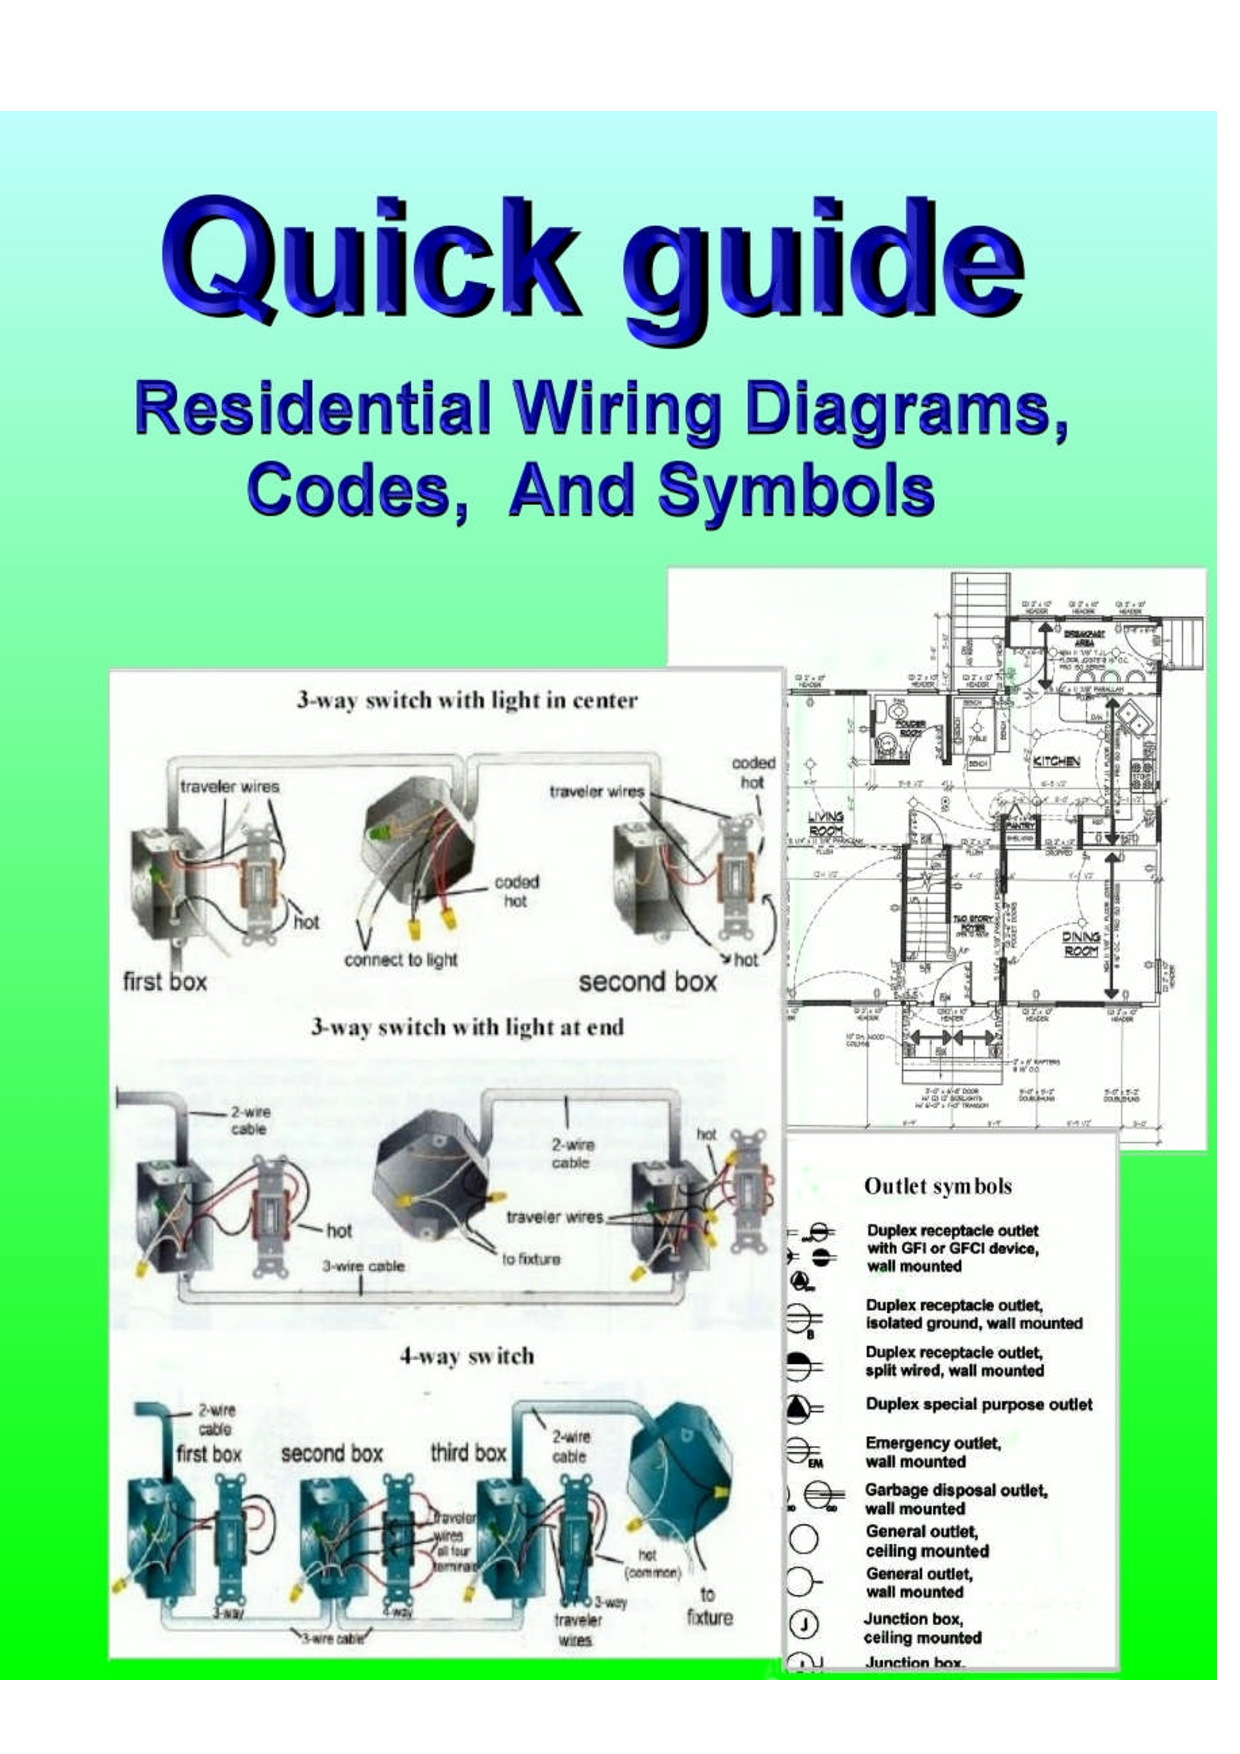 home electrical wiring diagrams   informational   pinterest   home    home electrical wiring diagrams   informational   pinterest   home electrical wiring  electrical wiring diagram and electrical wiring